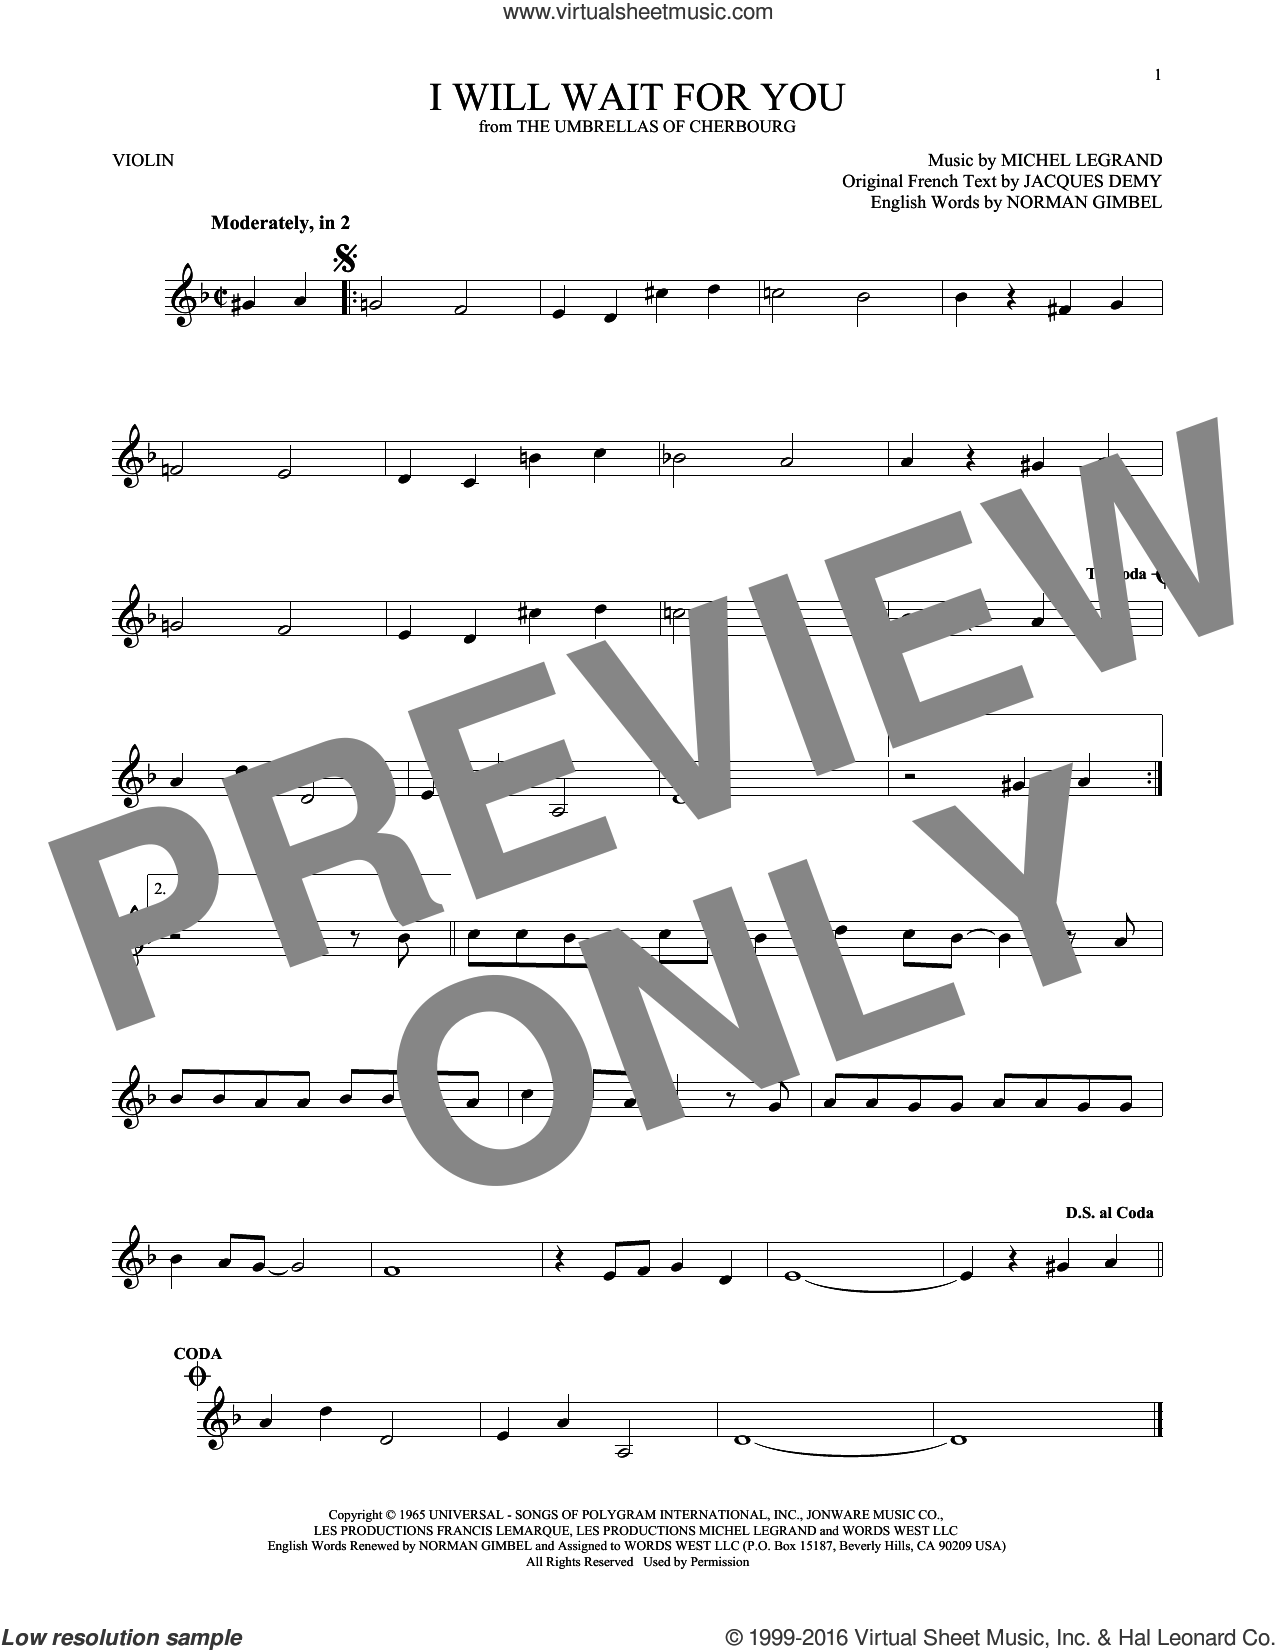 I Will Wait For You sheet music for violin solo by Michel Legrand, Jacques Demy and Norman Gimbel, intermediate skill level